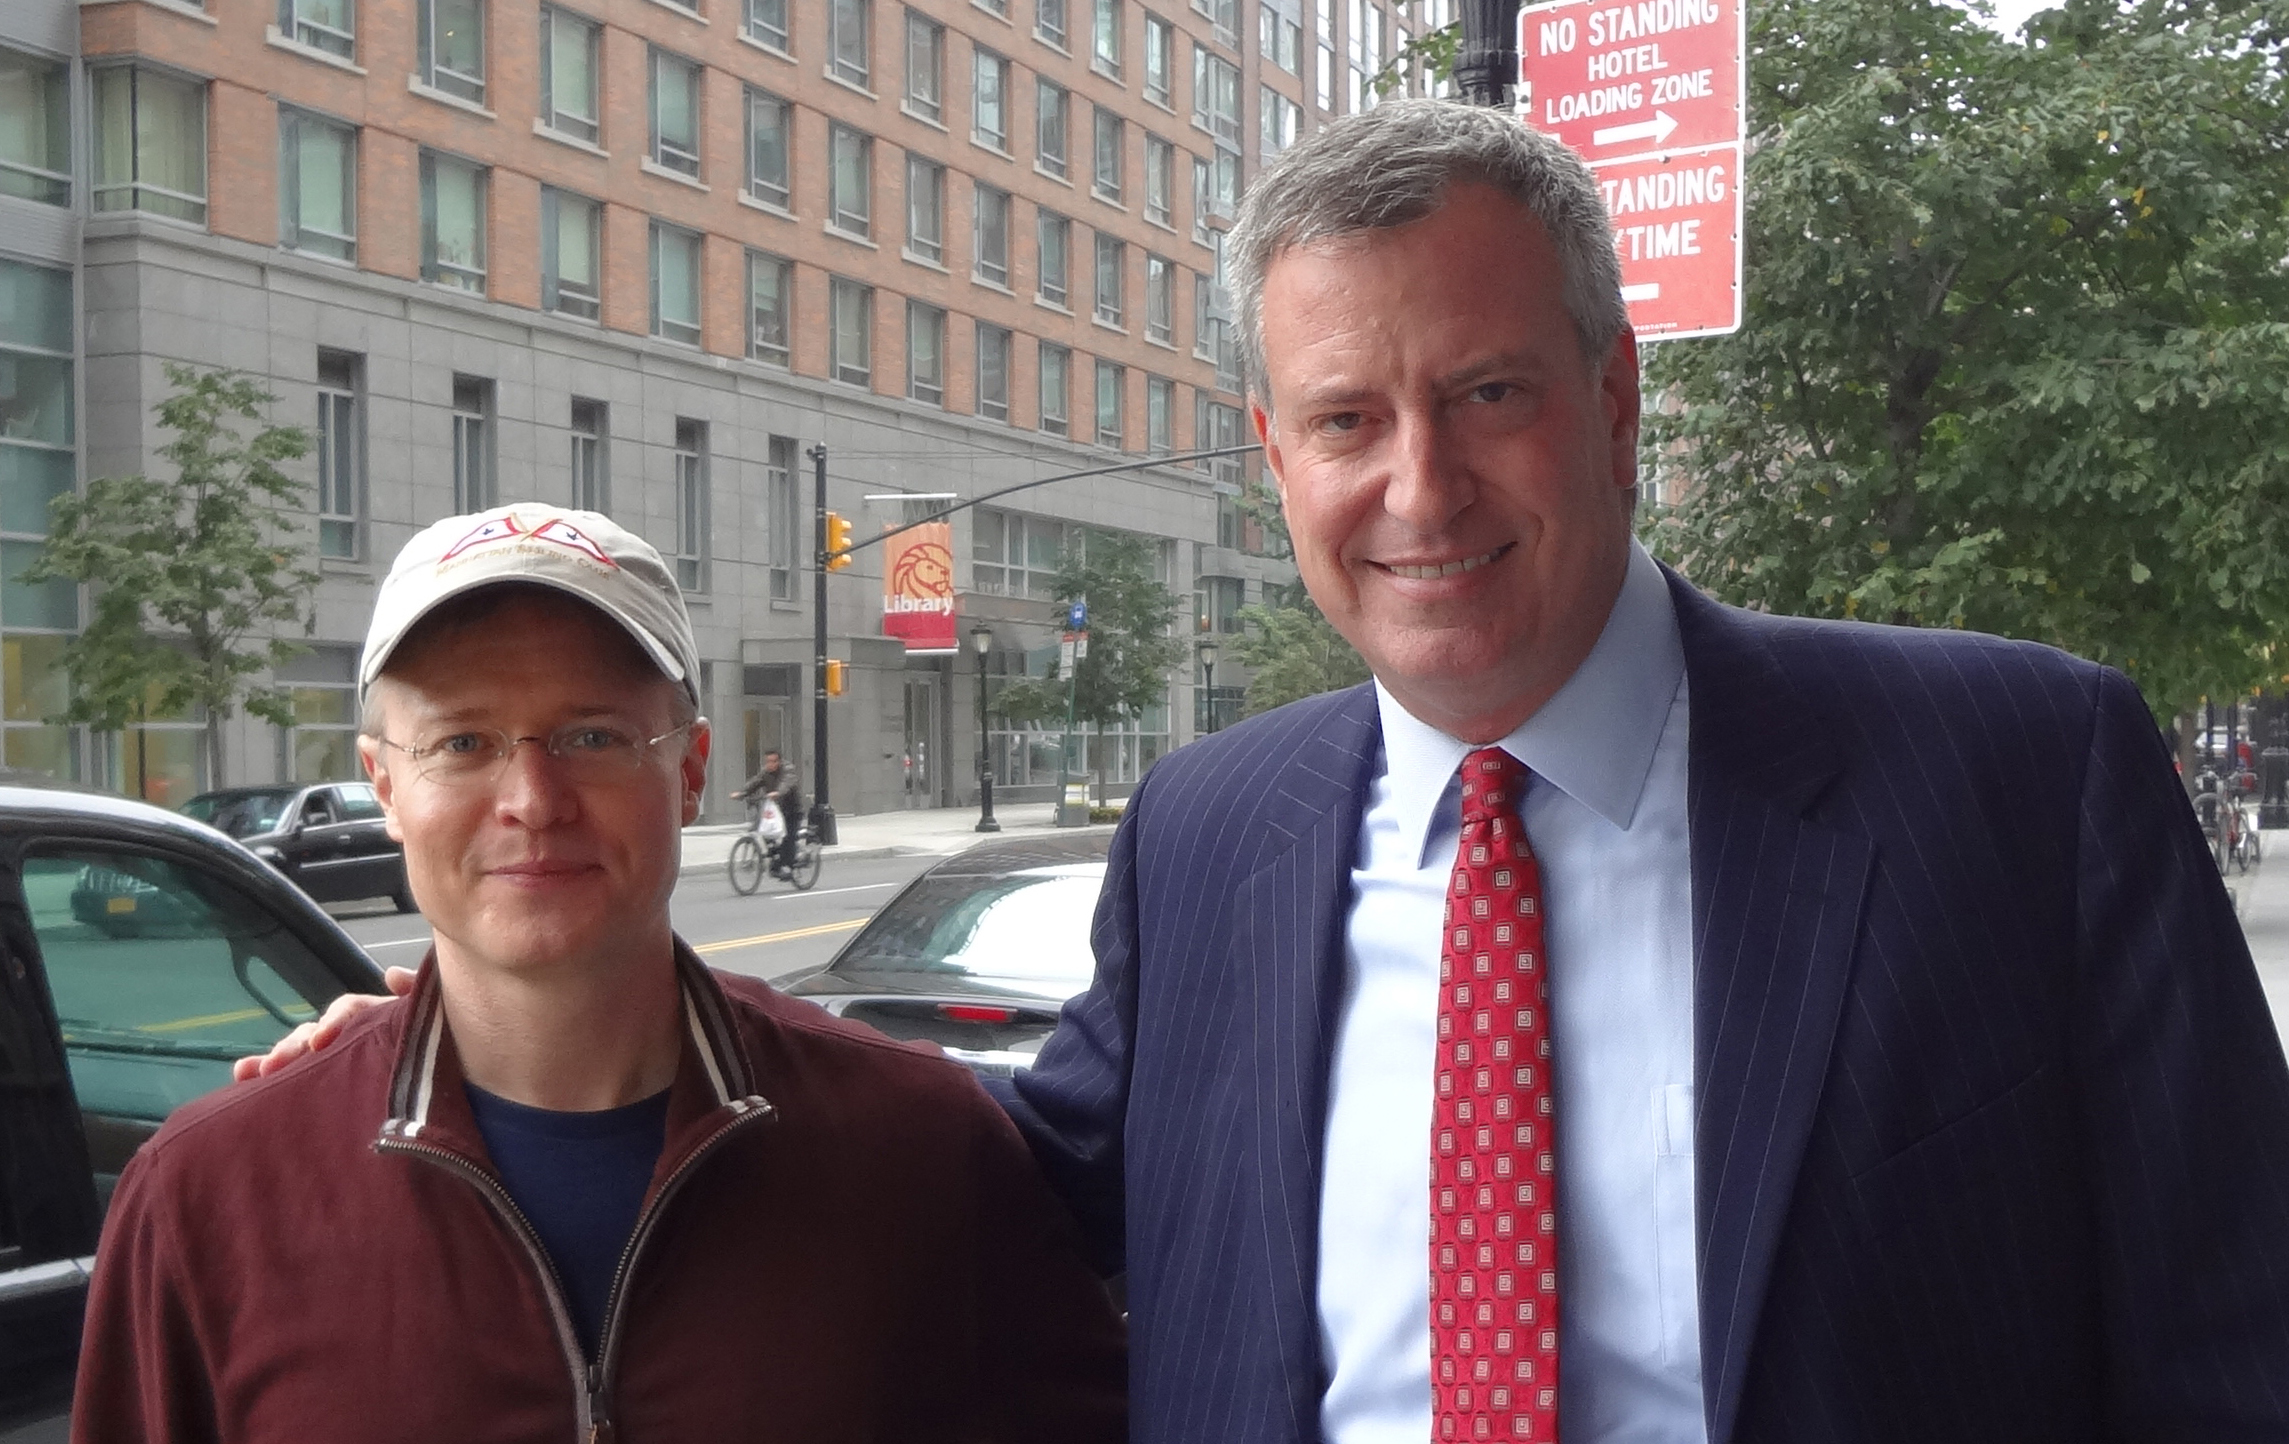 Bill-de-Blasio-and-Steven-E-Greer-MD-cropped